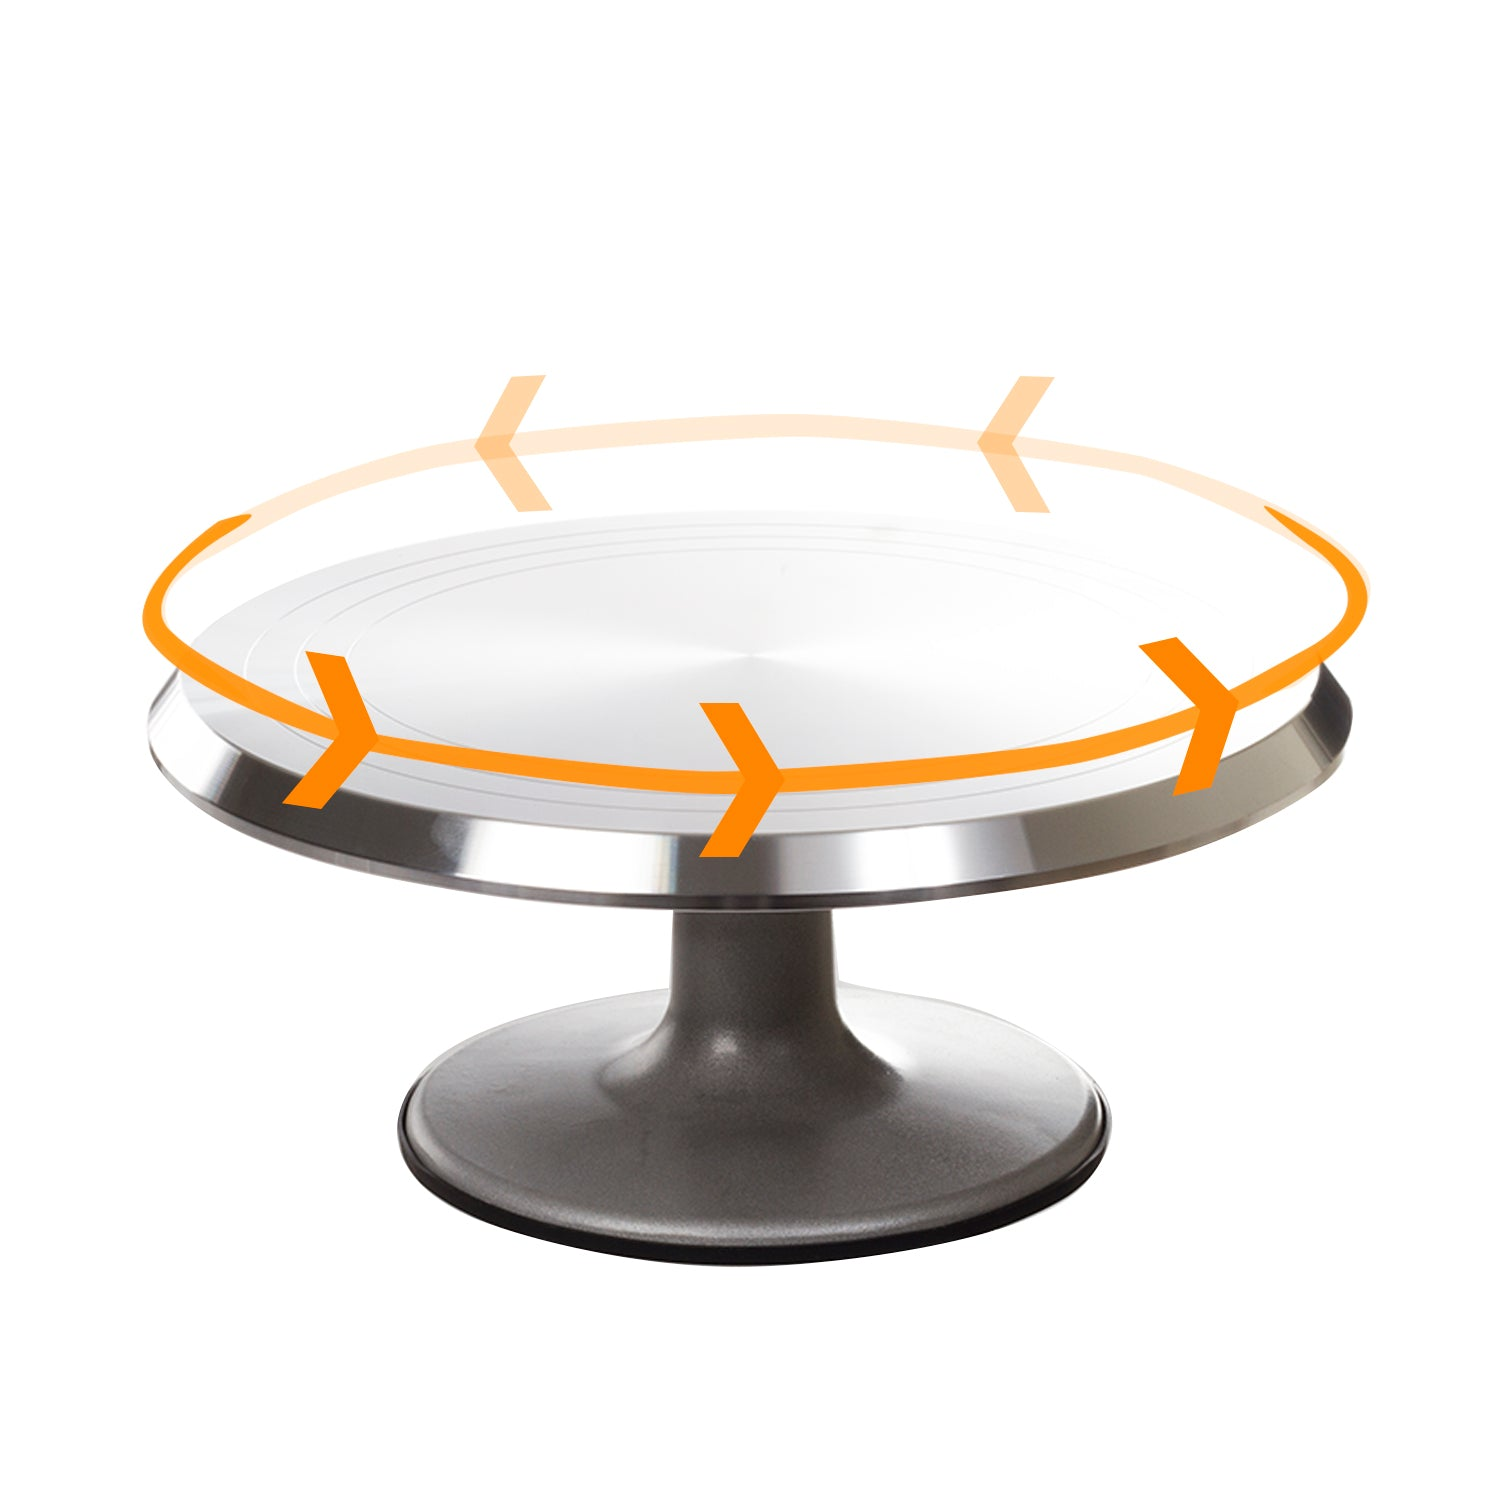 Pedestal Cake Stand – Metal Rotating Cake Stand – Cake Cupcake Stands - Revolving Cake Stand with Cake Decorating Tools